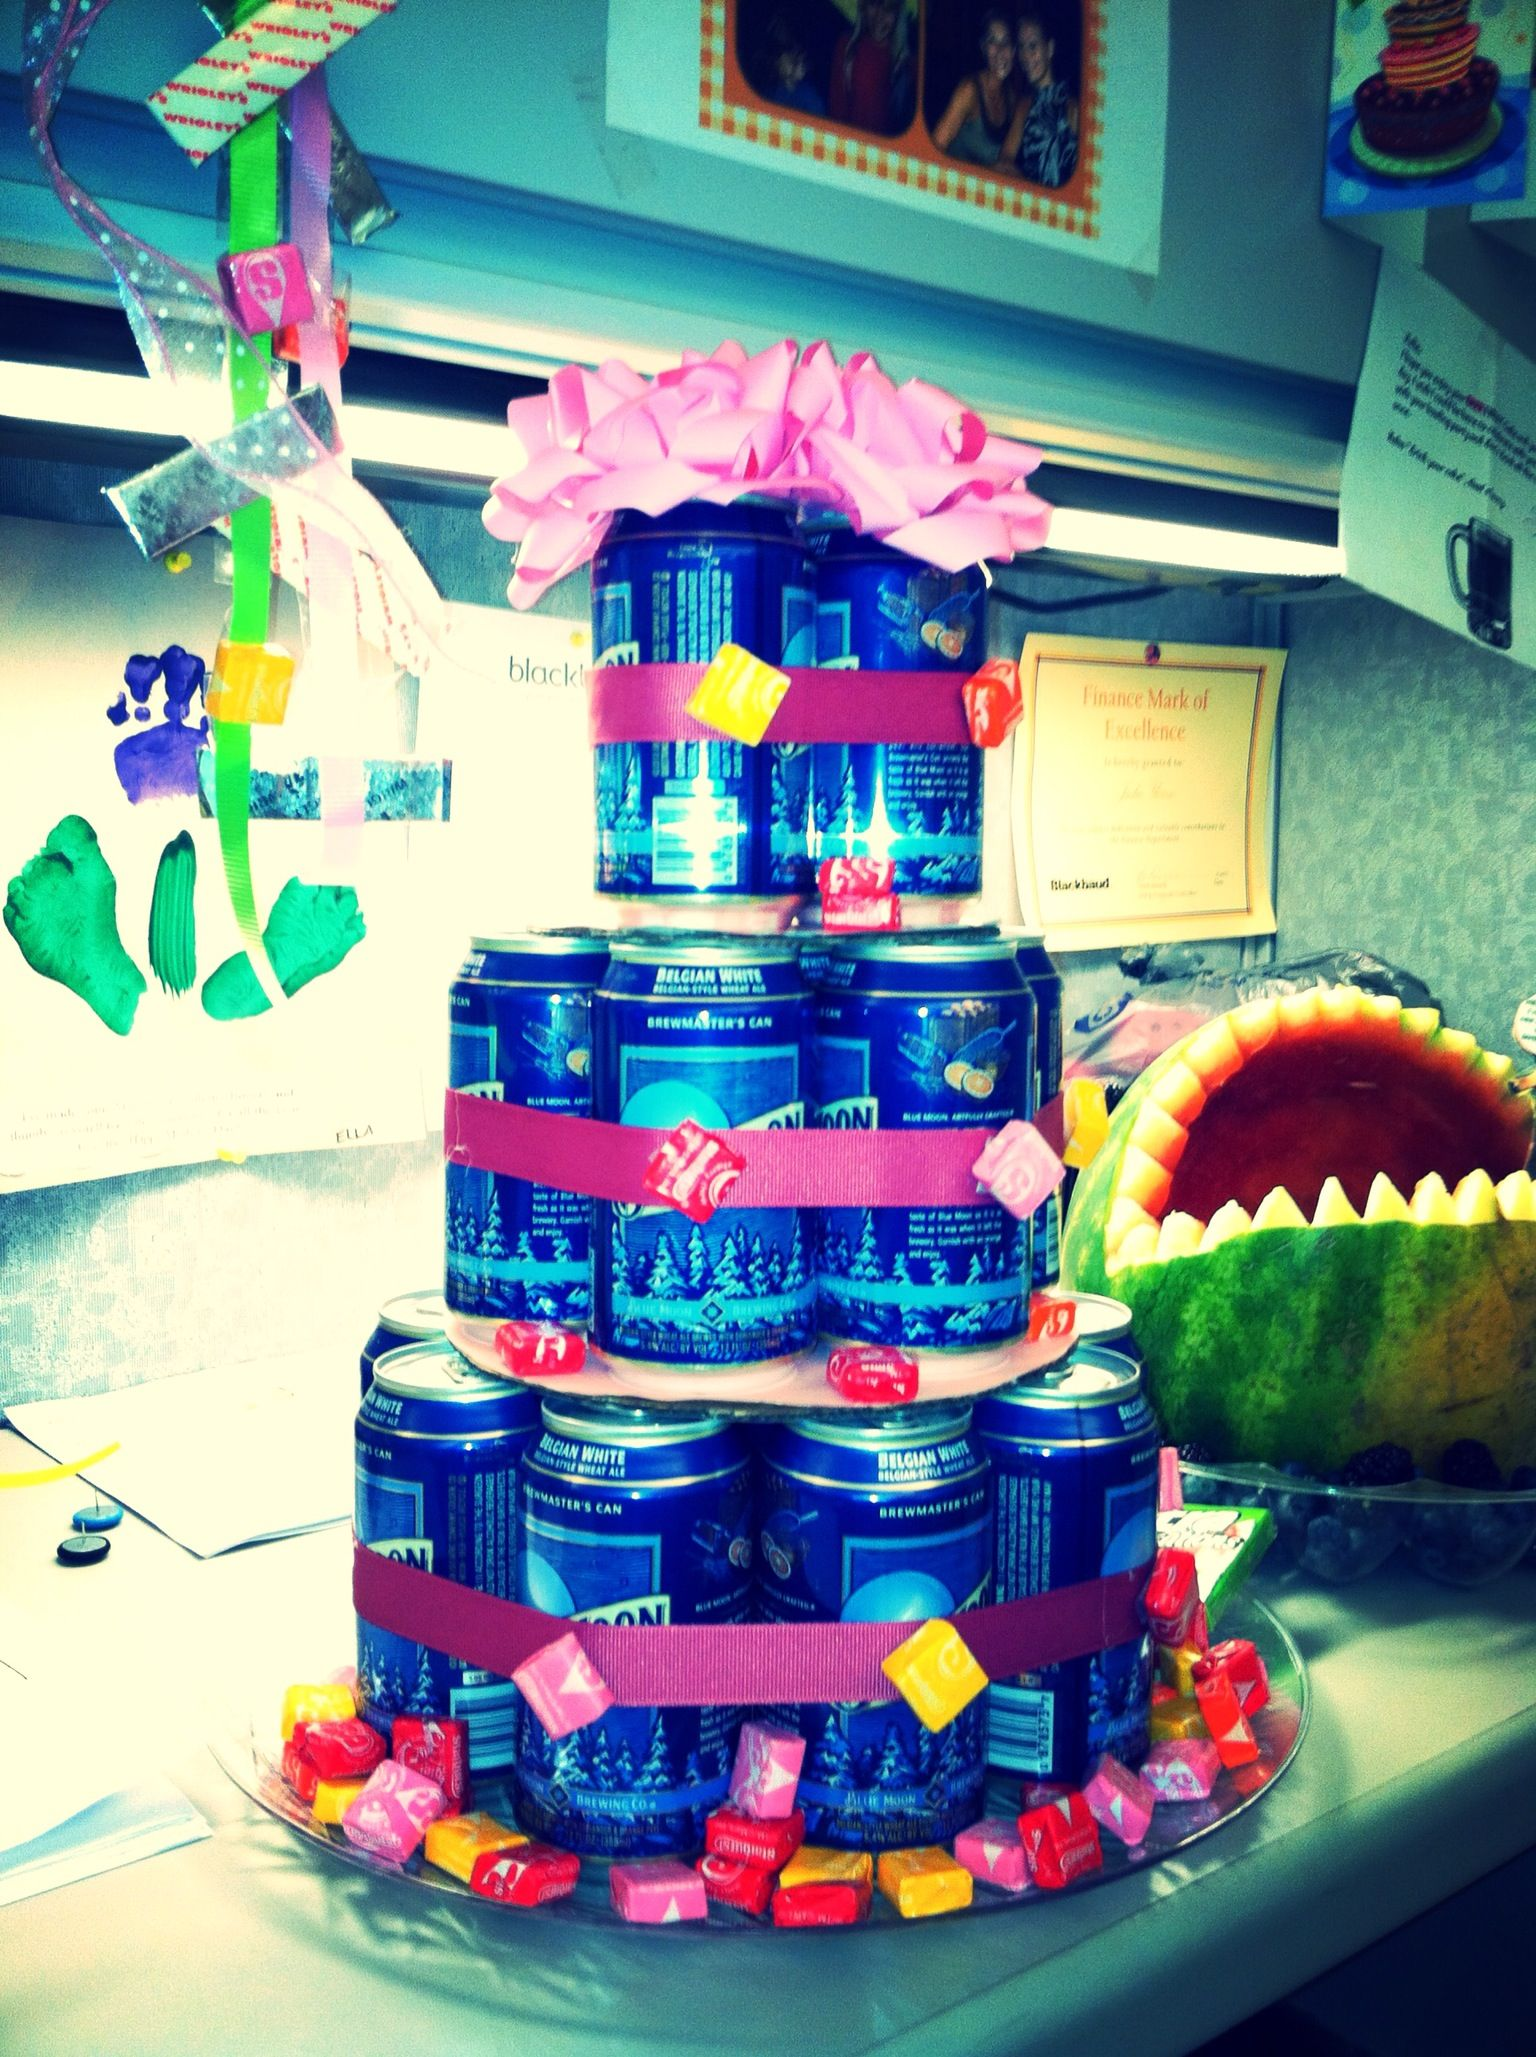 Blue moon beer tower for my birthday!